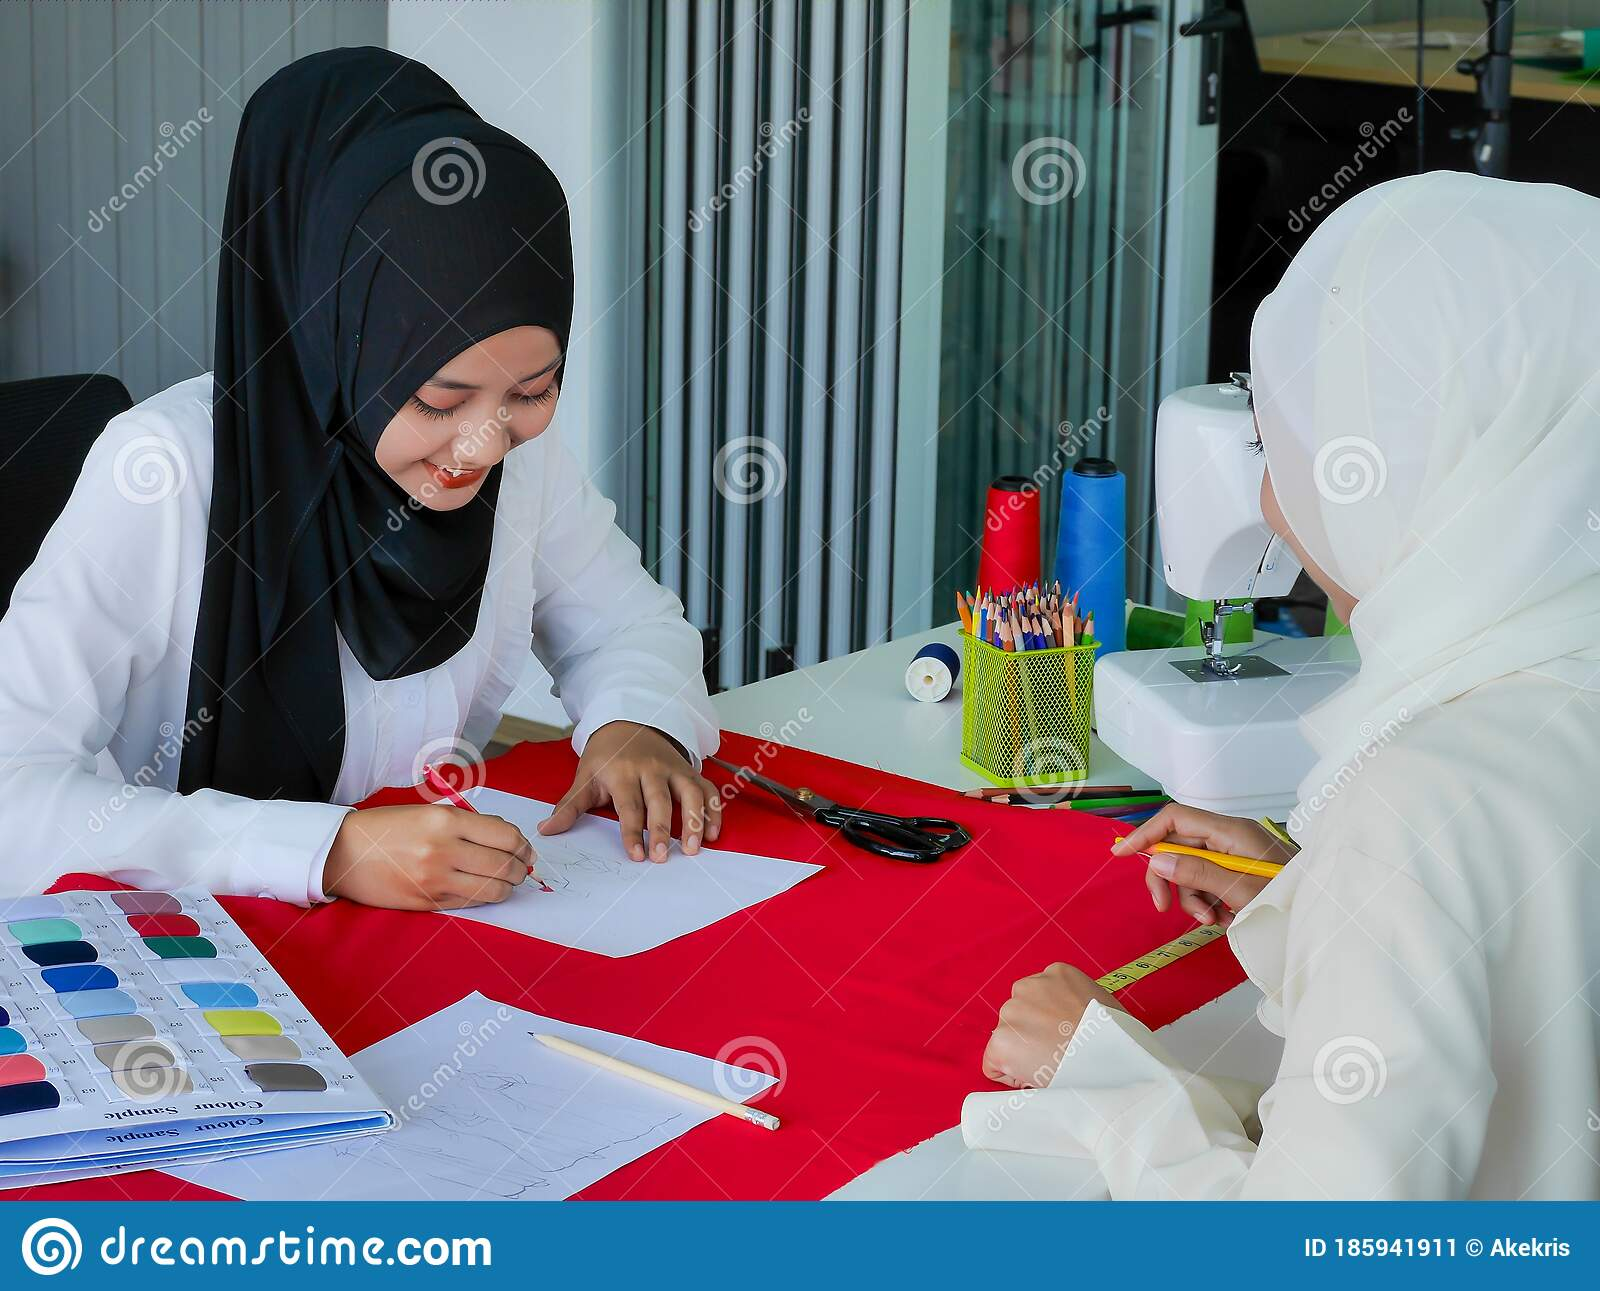 Female Muslim Fashion Designers Wearing Hijab Working On Dress Stylist Project In The Studio Work Stock Image Image Of Female Ethnicity 185941911